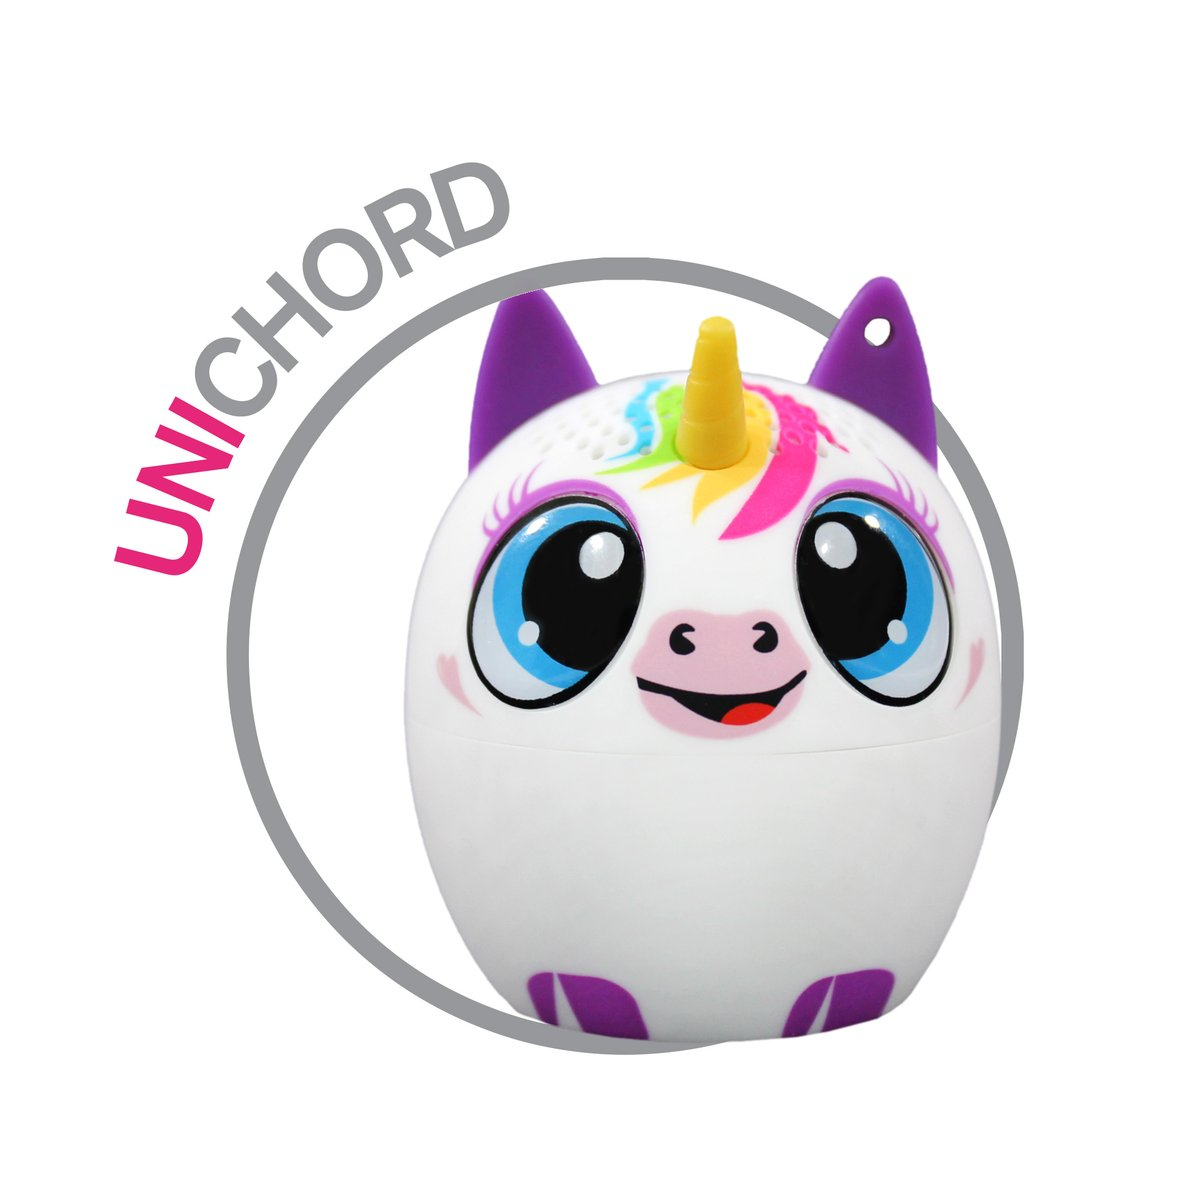 UniCHORD - The My Audio Pet Unicorn